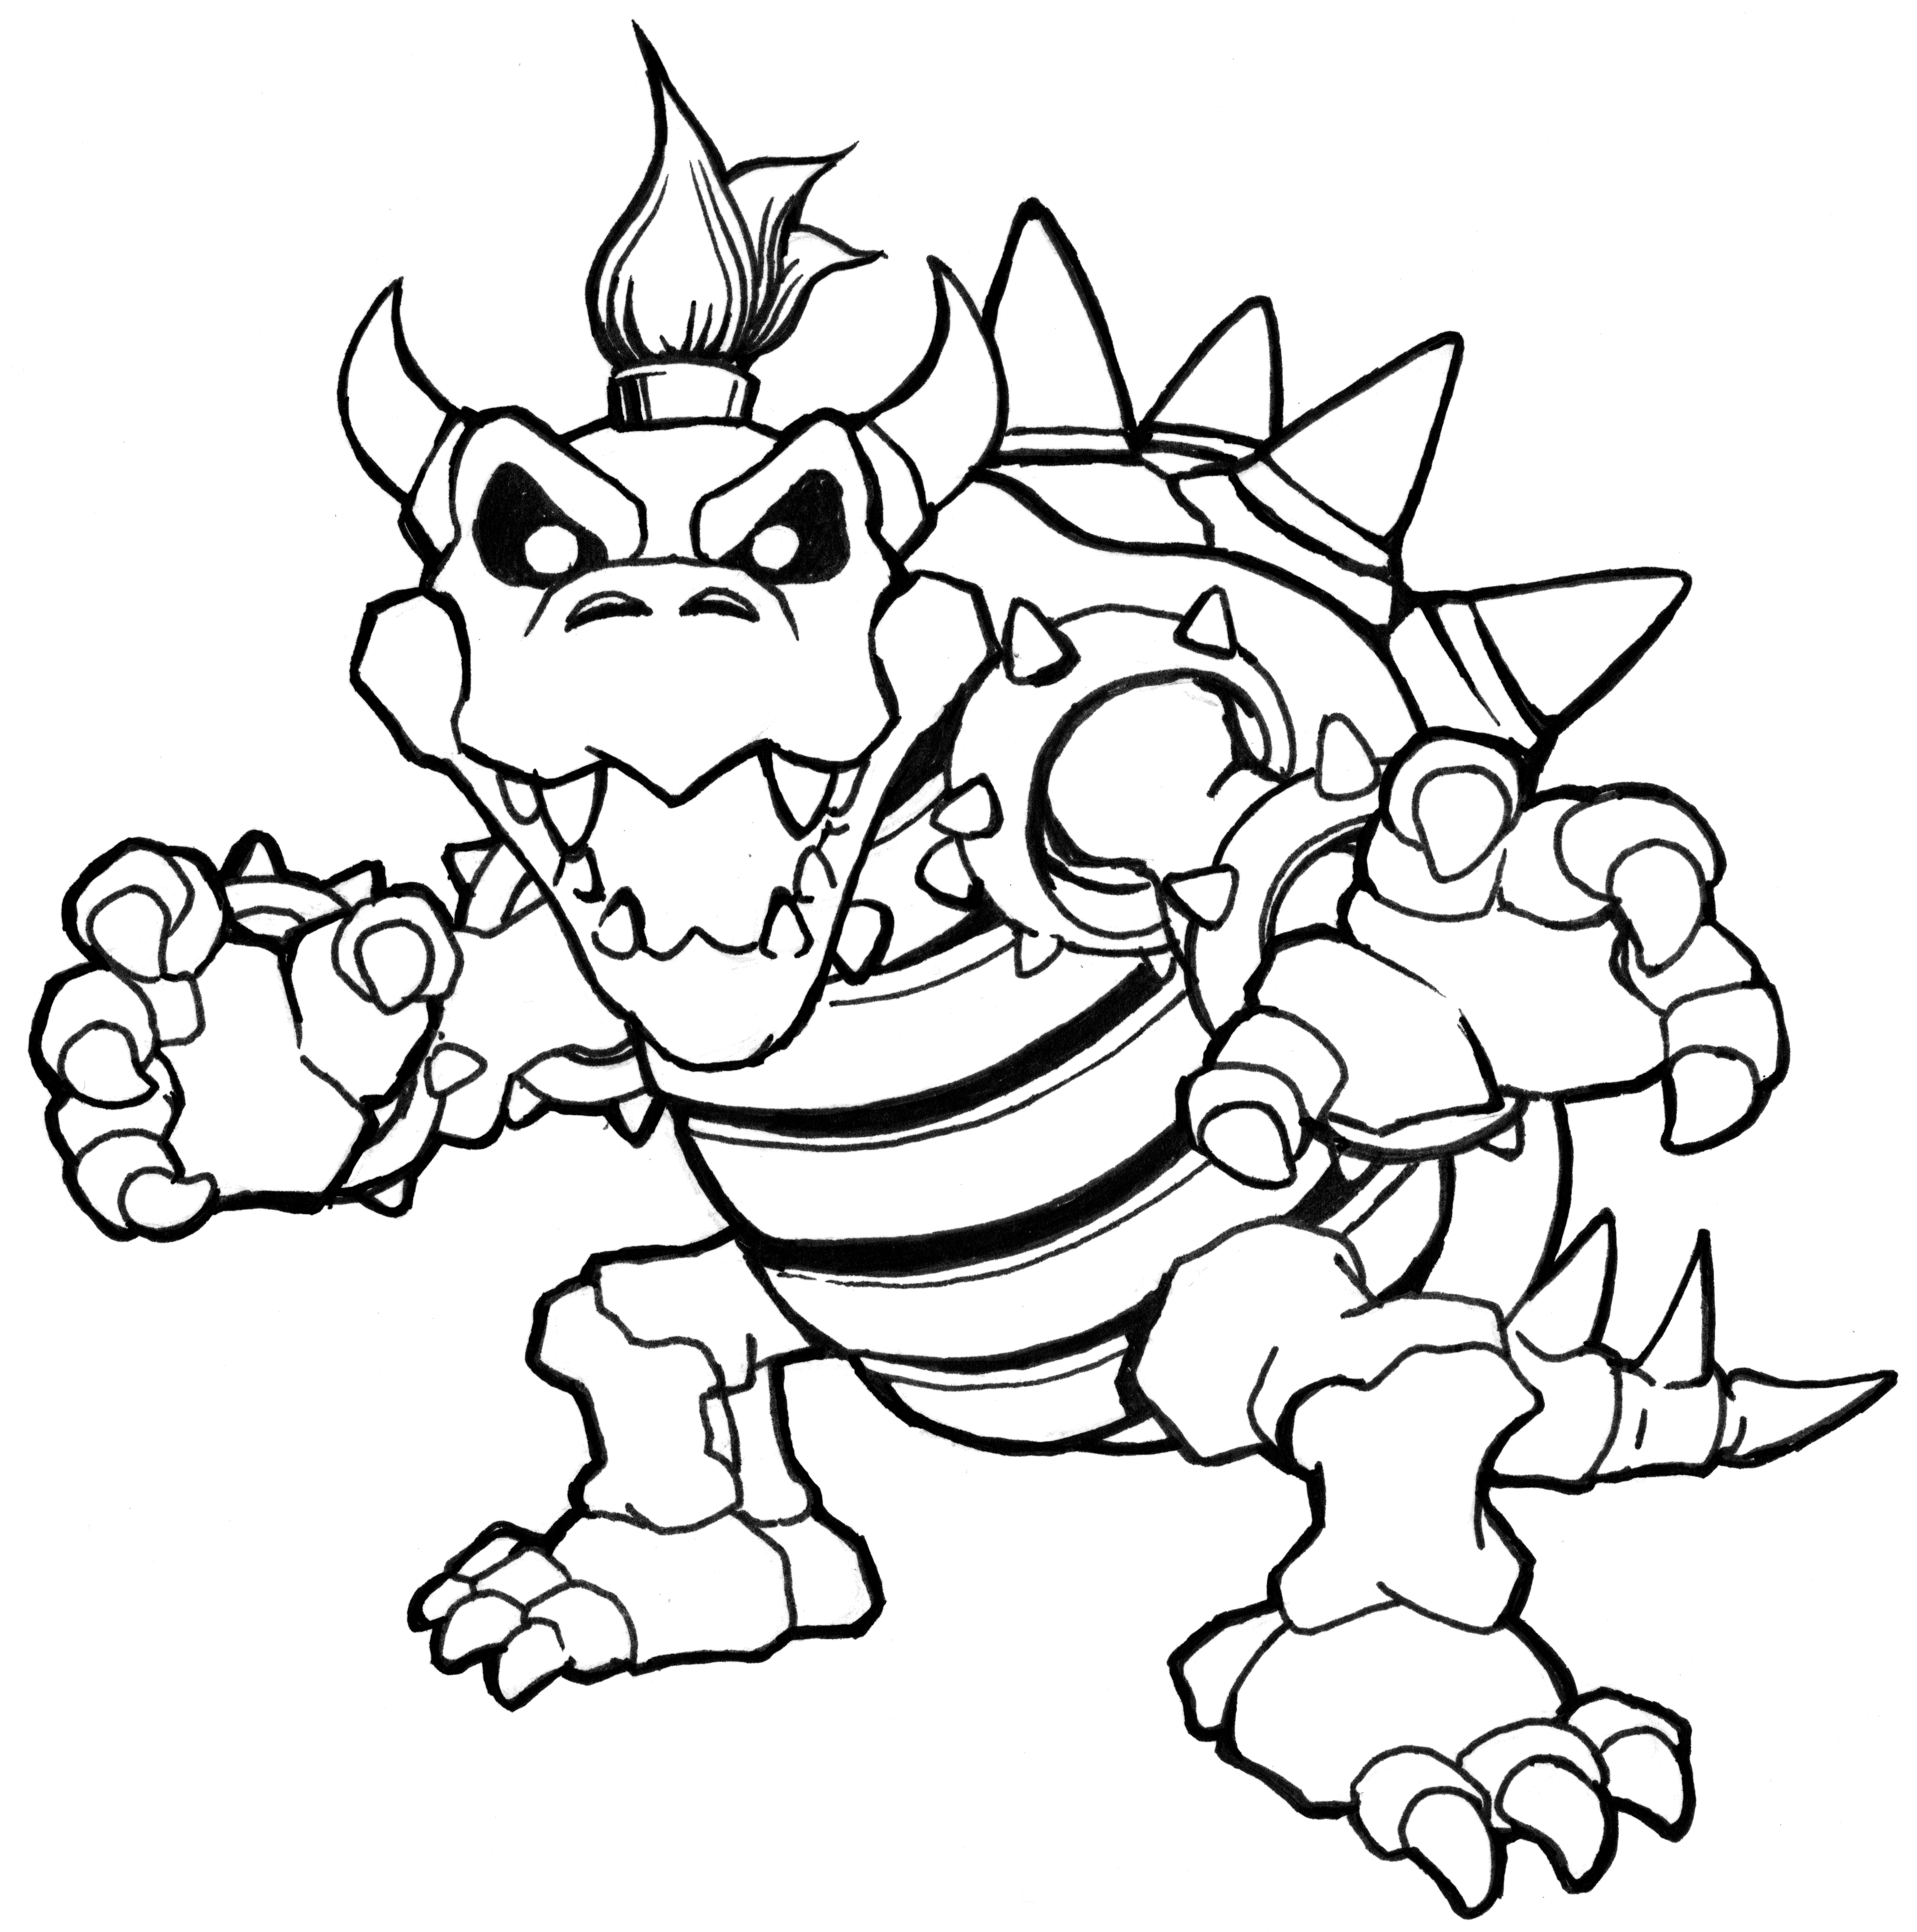 bowser and bowser jr coloring pages | Bowser Drawing at GetDrawings.com | Free for personal use ...